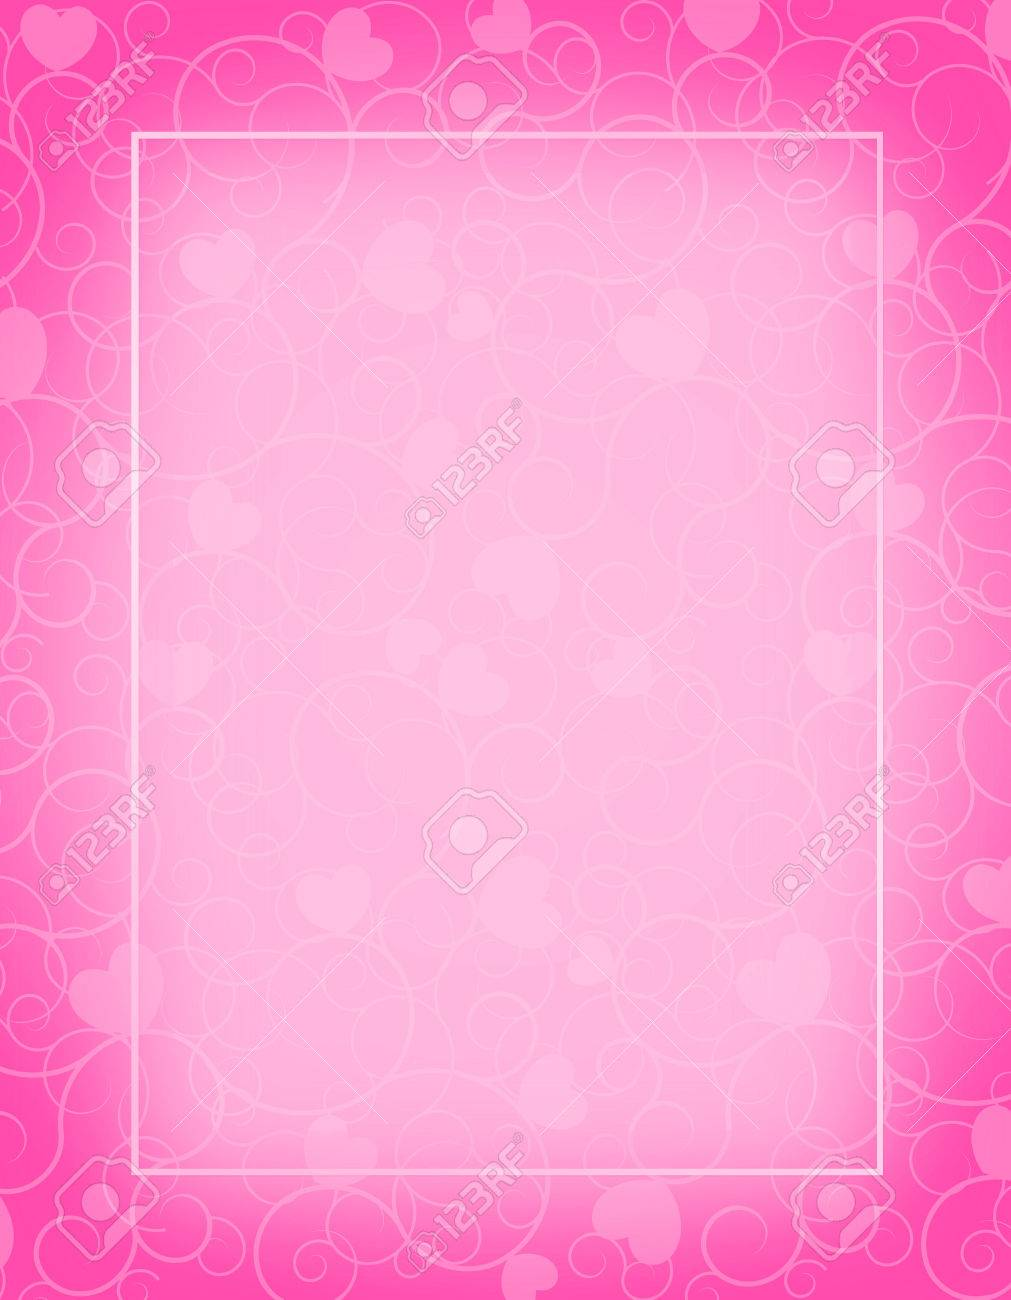 cute pink color blank empty background perfect as stylish